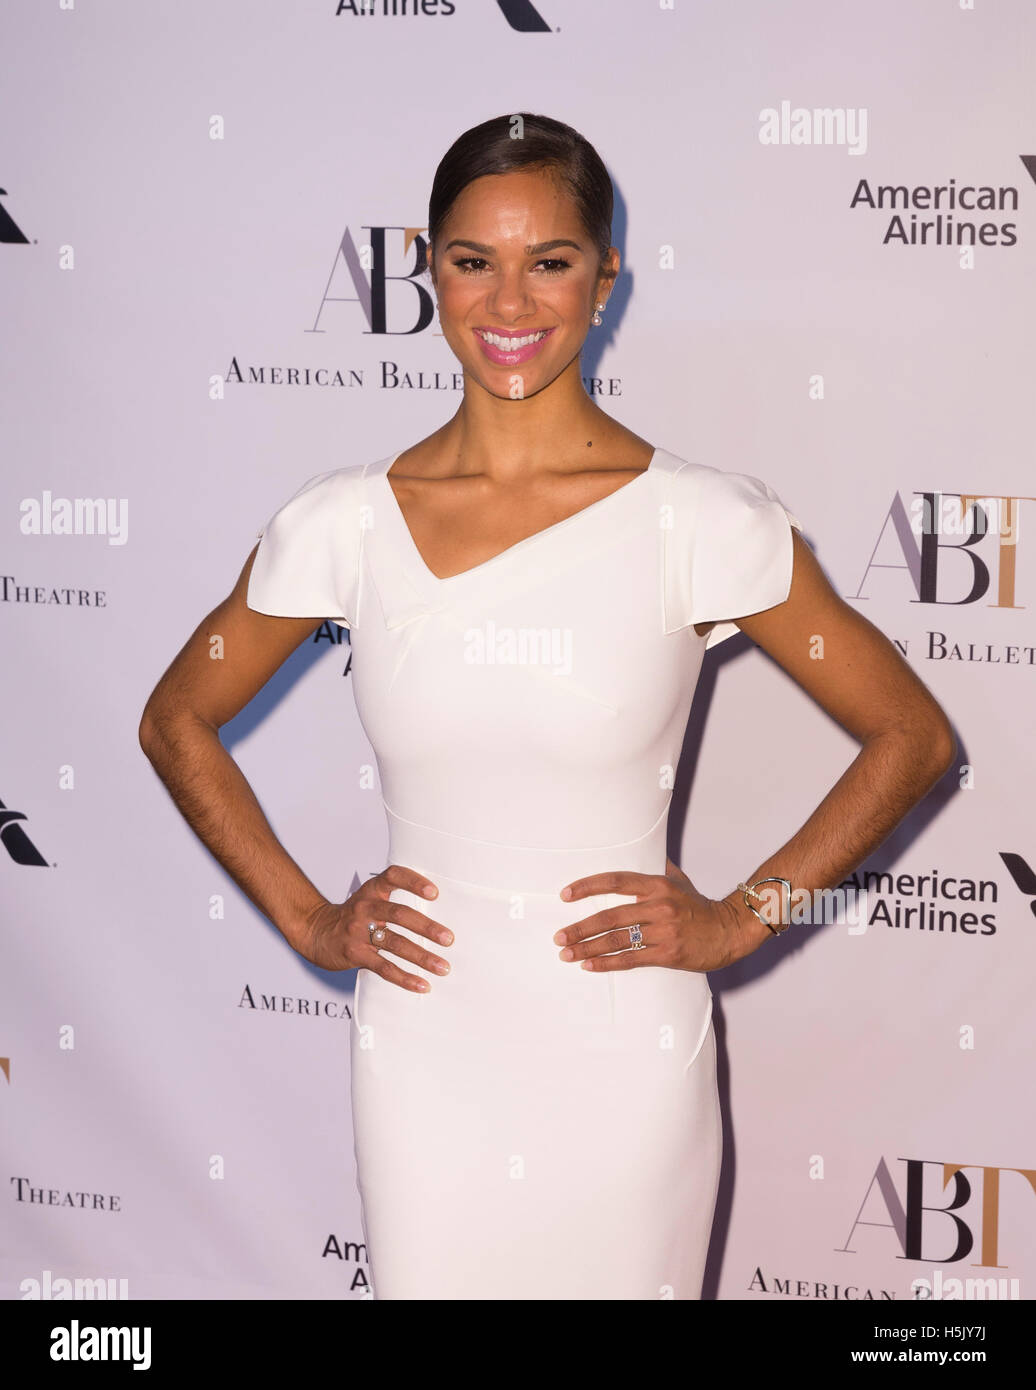 New York, United States. 20th Oct, 2016. Misty Copeland attends American Ballet Theatre 2016 Fall Gala at Lincoln - Stock Image